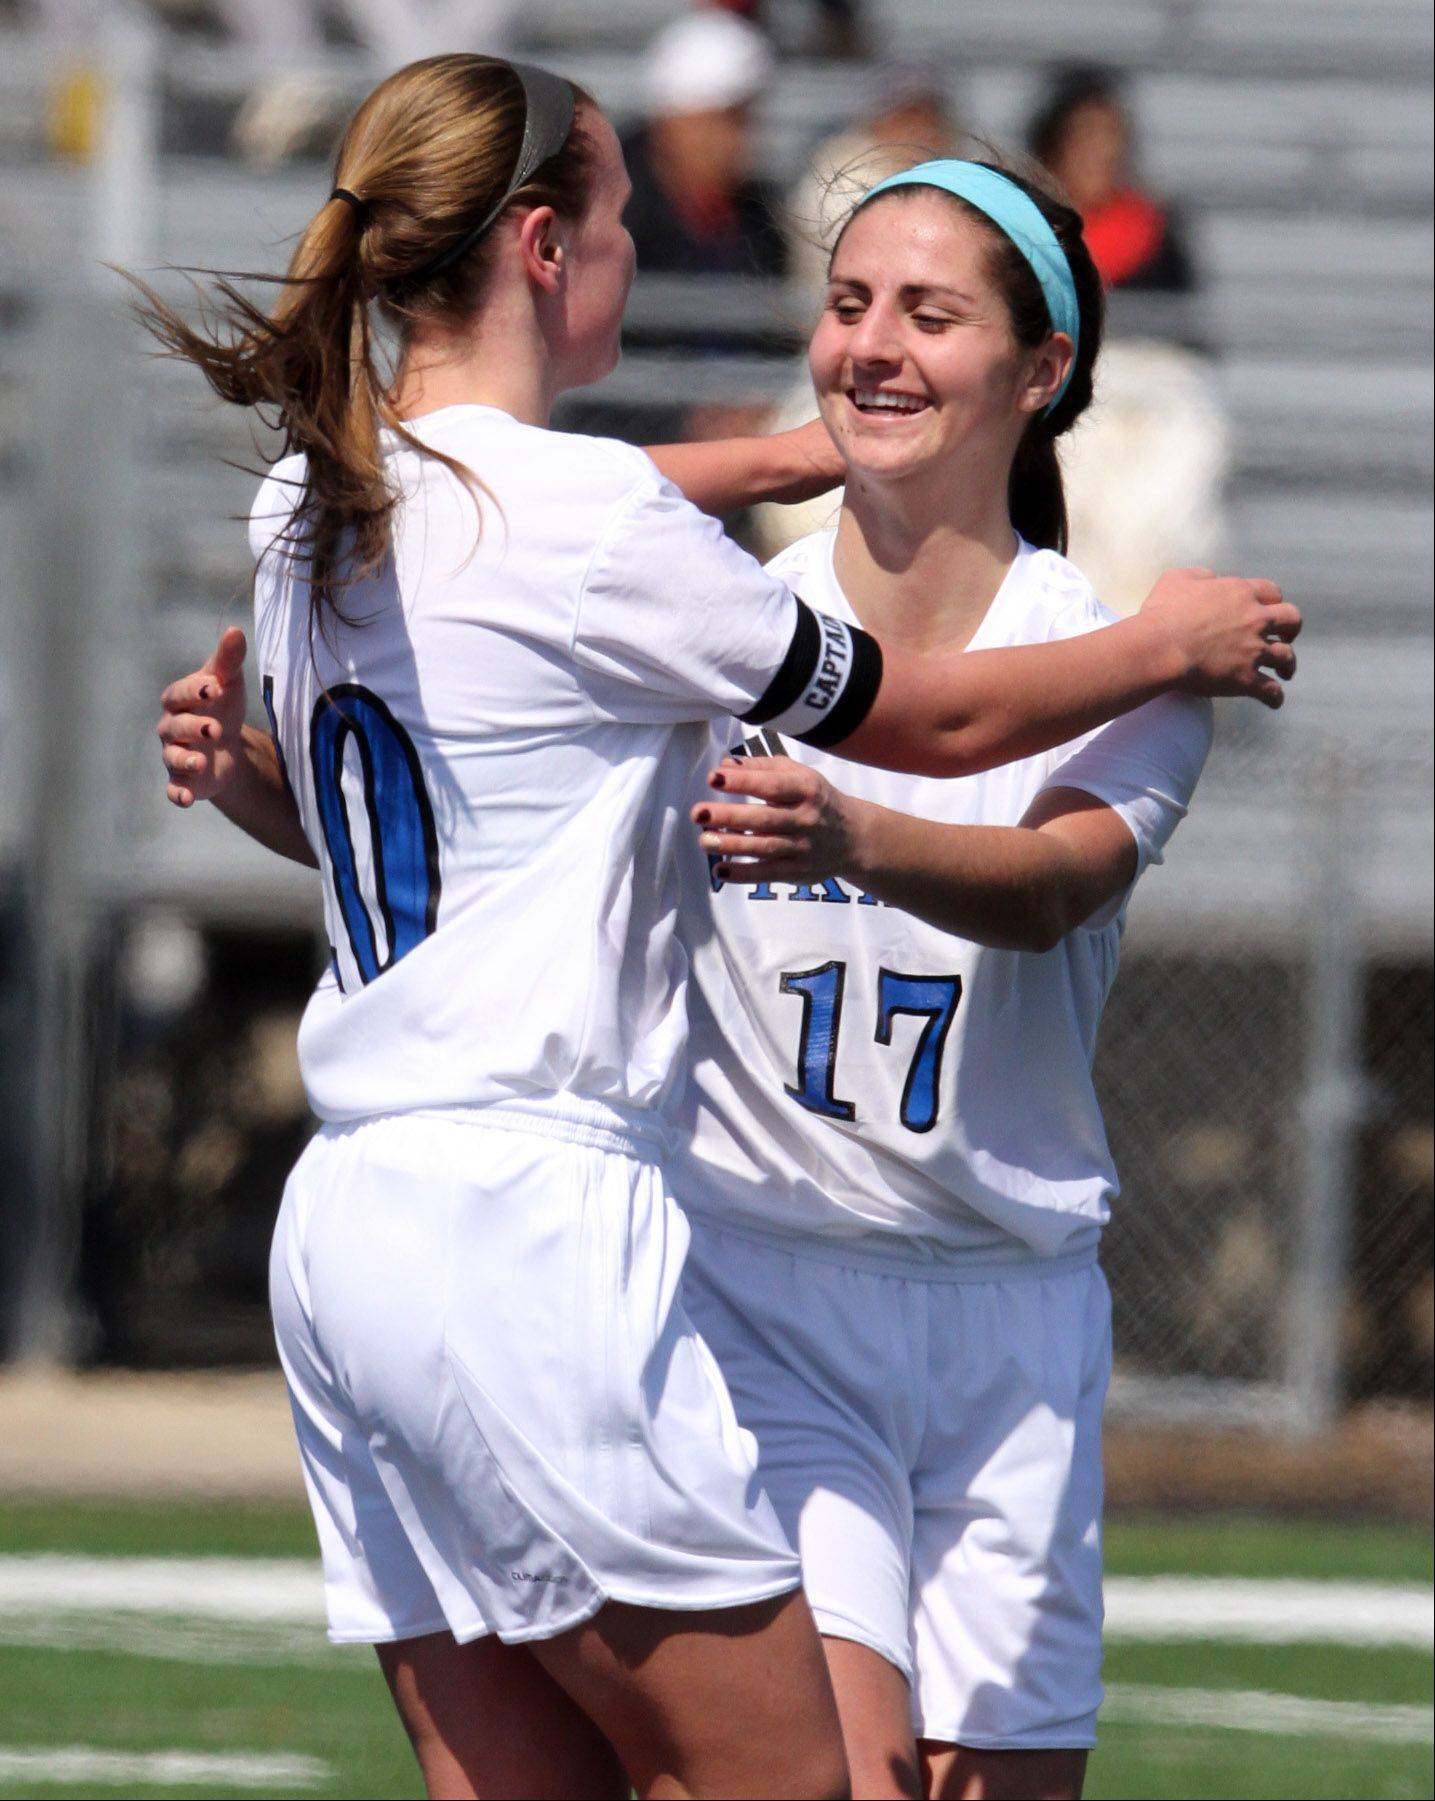 Geneva's Amanda Lulek, left, gets a hand after scoring by Molly Stanfa, who assisted, at Geneva on Saturday, March 23, 2013.